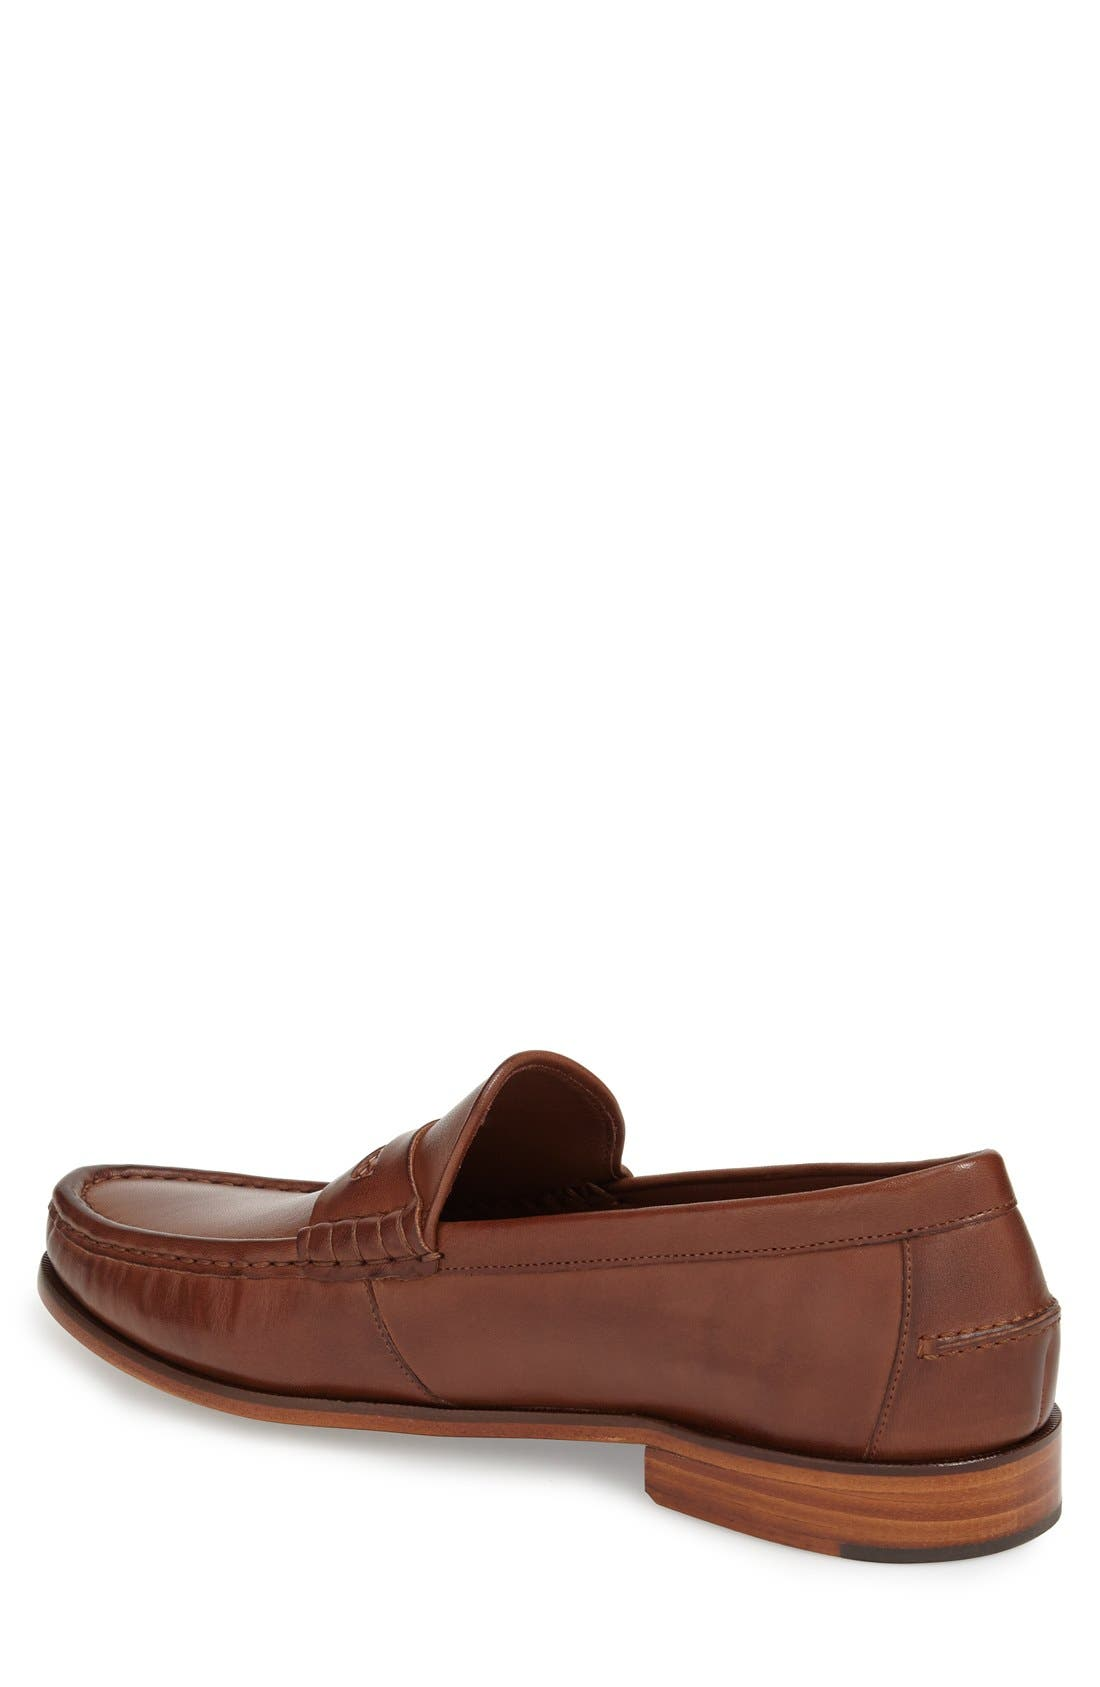 'Pinch Gotham' Penny Loafer,                             Alternate thumbnail 6, color,